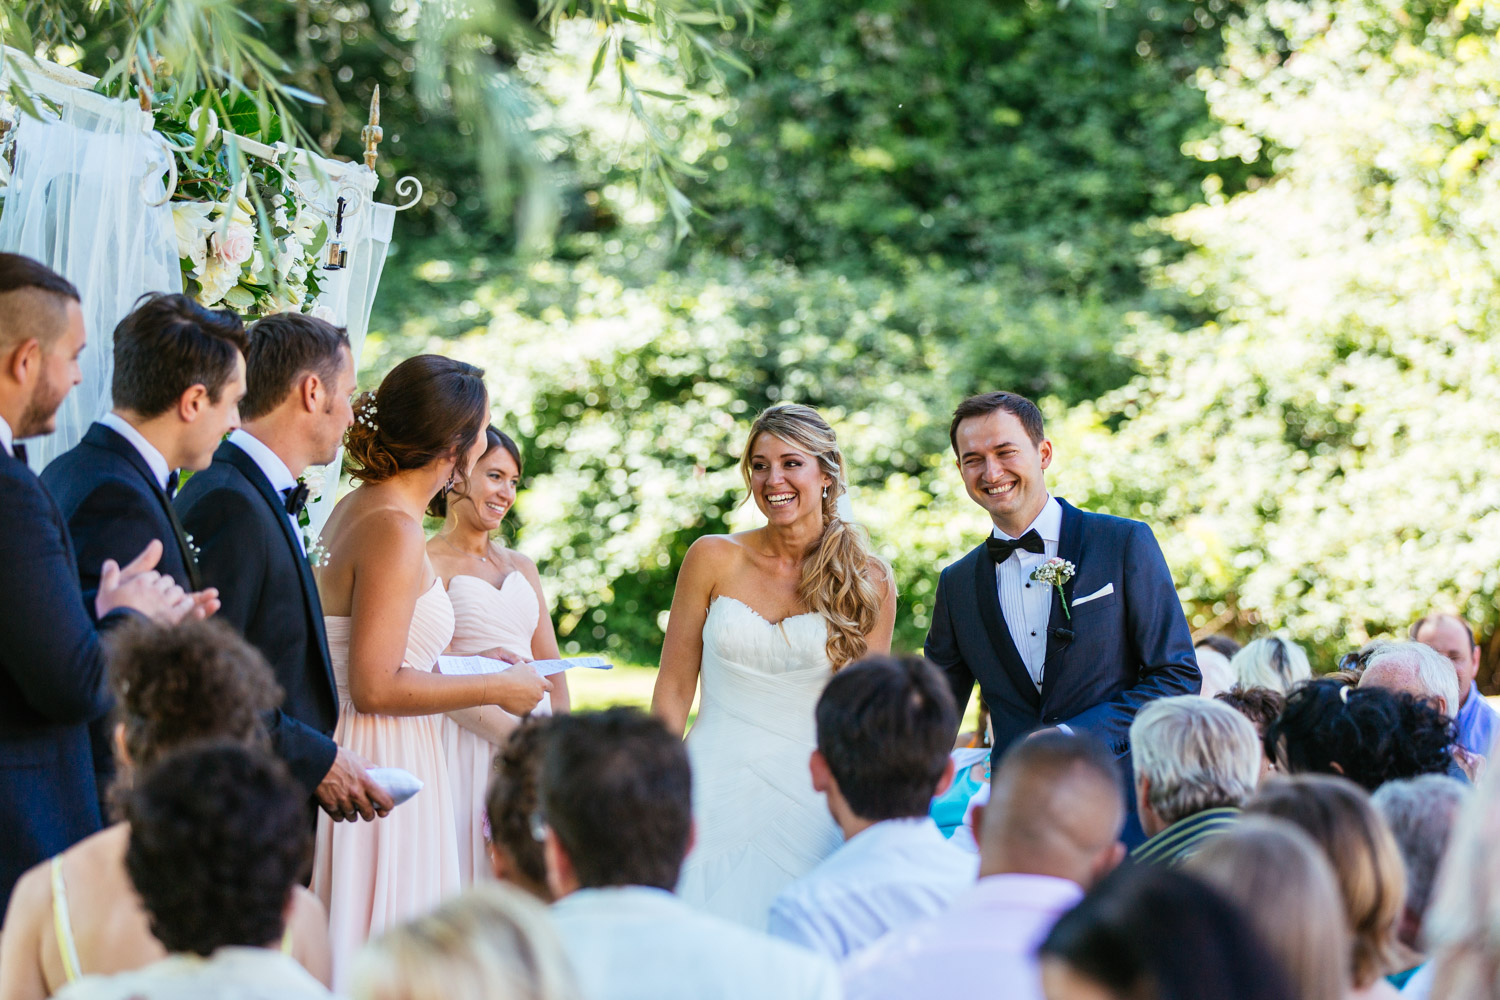 Laure-and-Mark-Wedding-Highlights-64.jpg